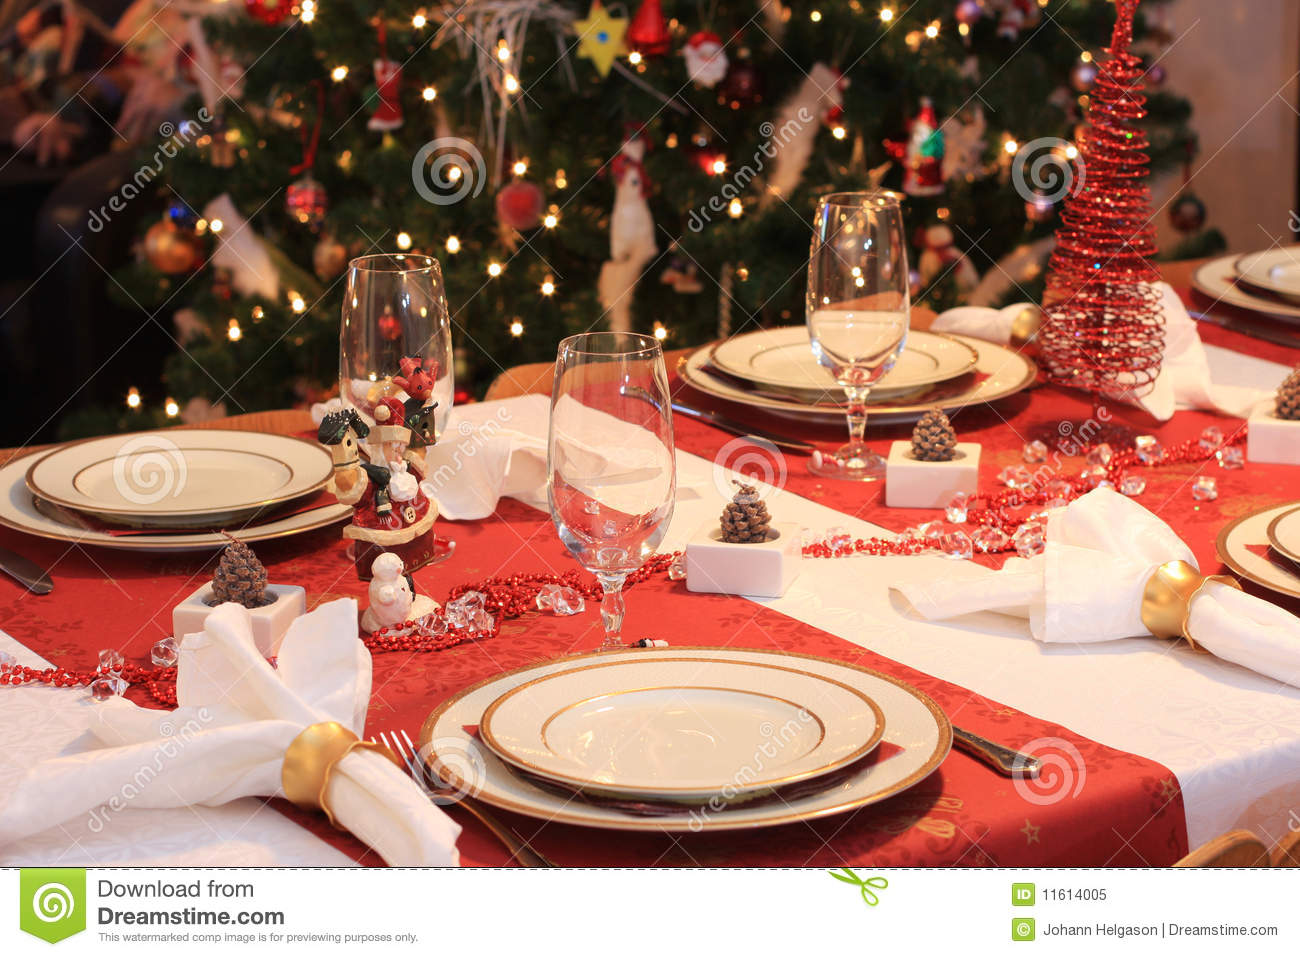 Download Christmas Dinner Table .